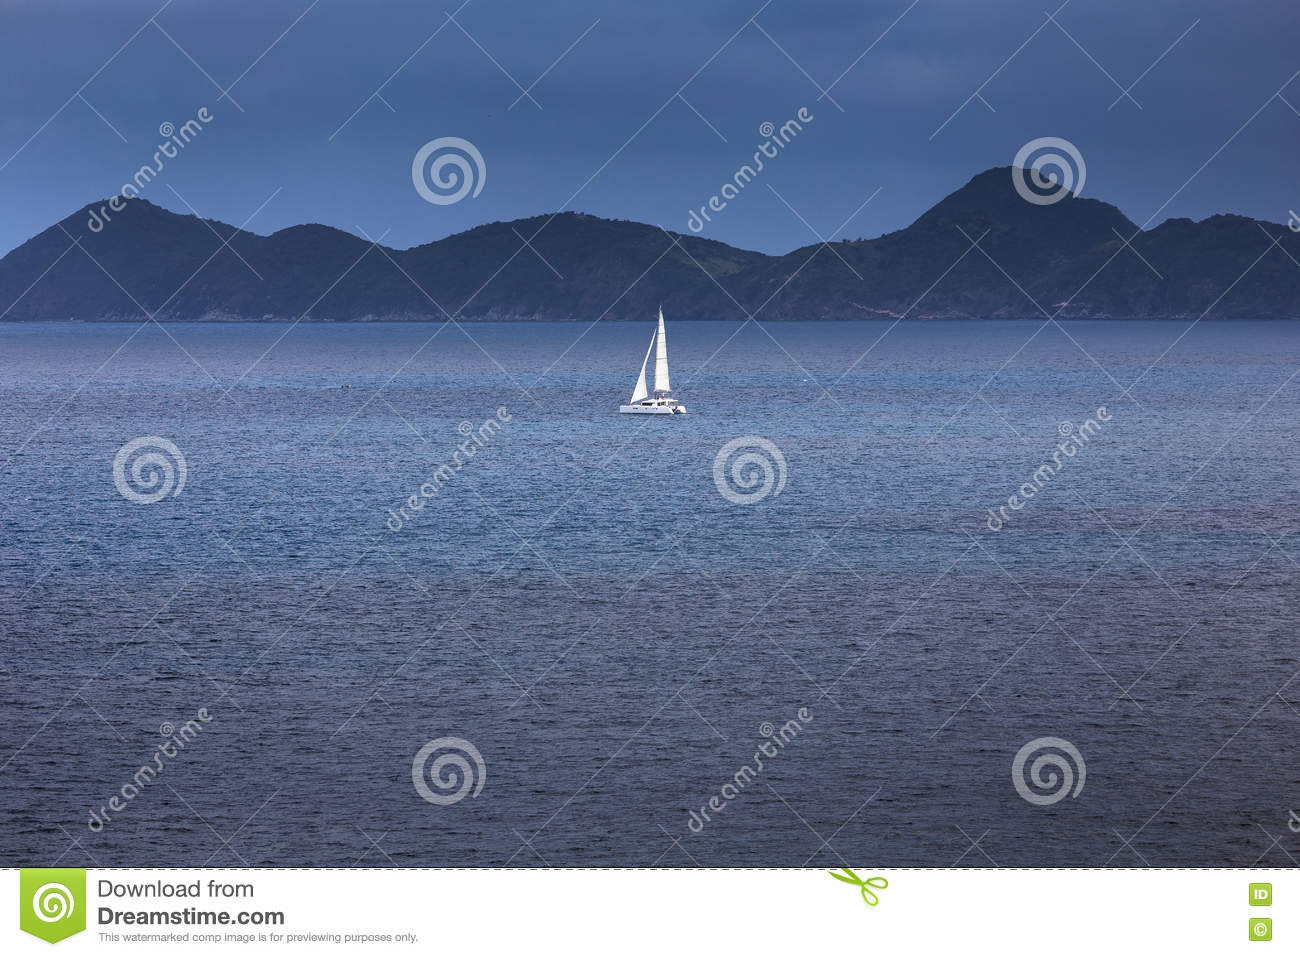 Sailing Yacht With White Sails In The Open Sea Stock Photo - Image